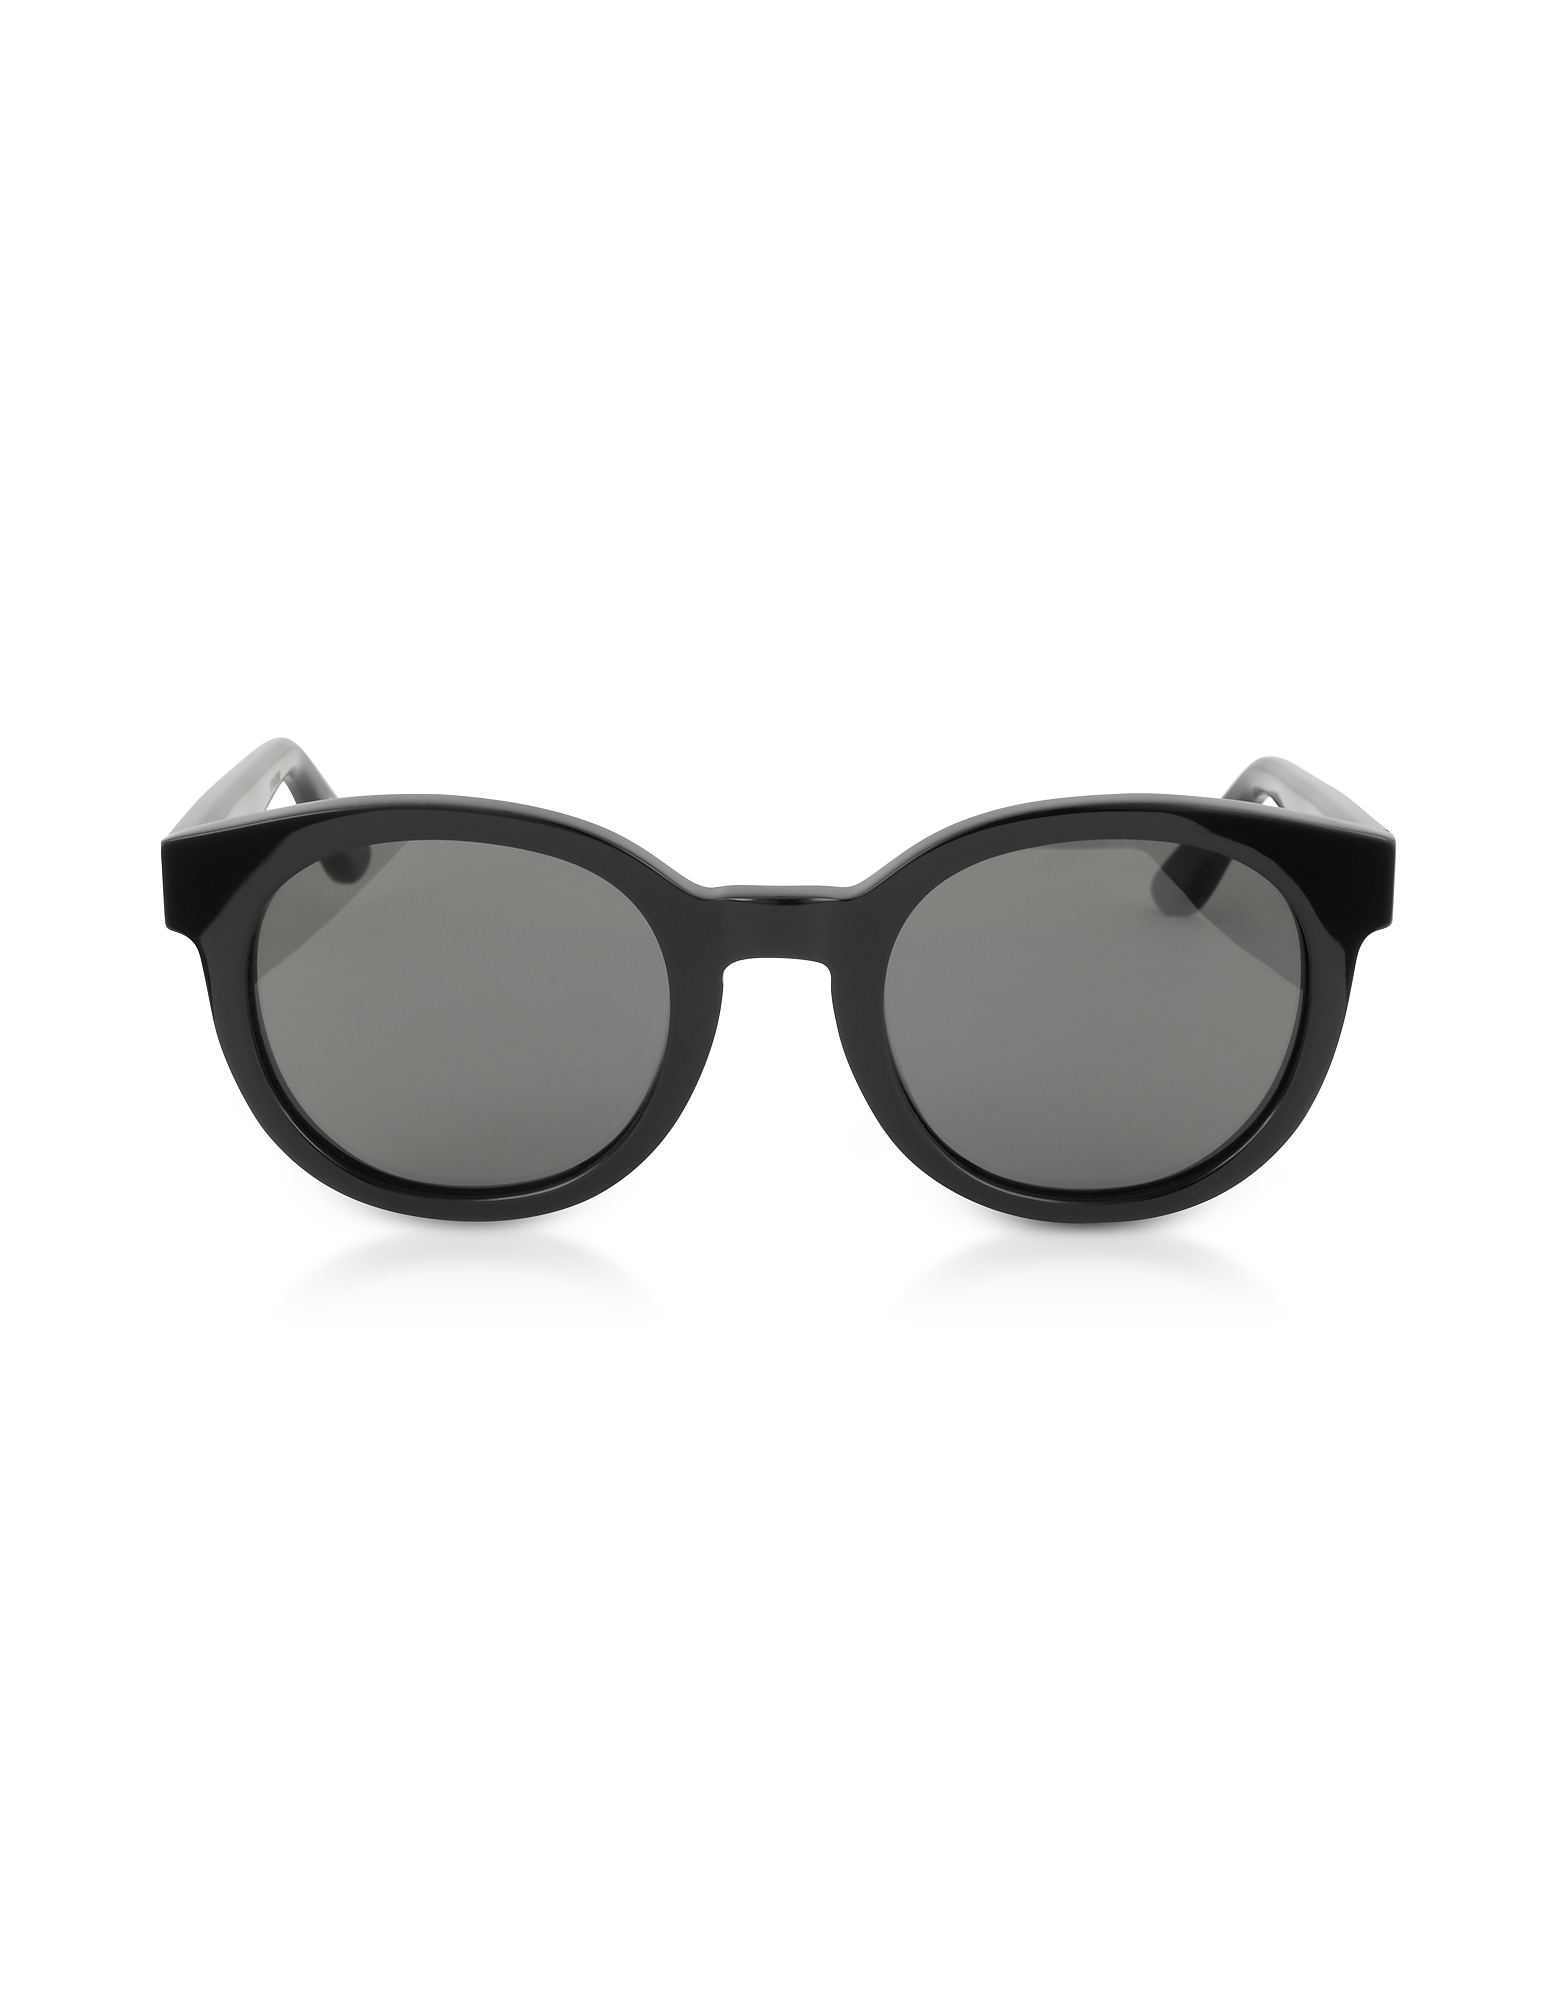 Saint Laurent Sunglasses, SL M15 001 Round Frame Acetate Sunglasses